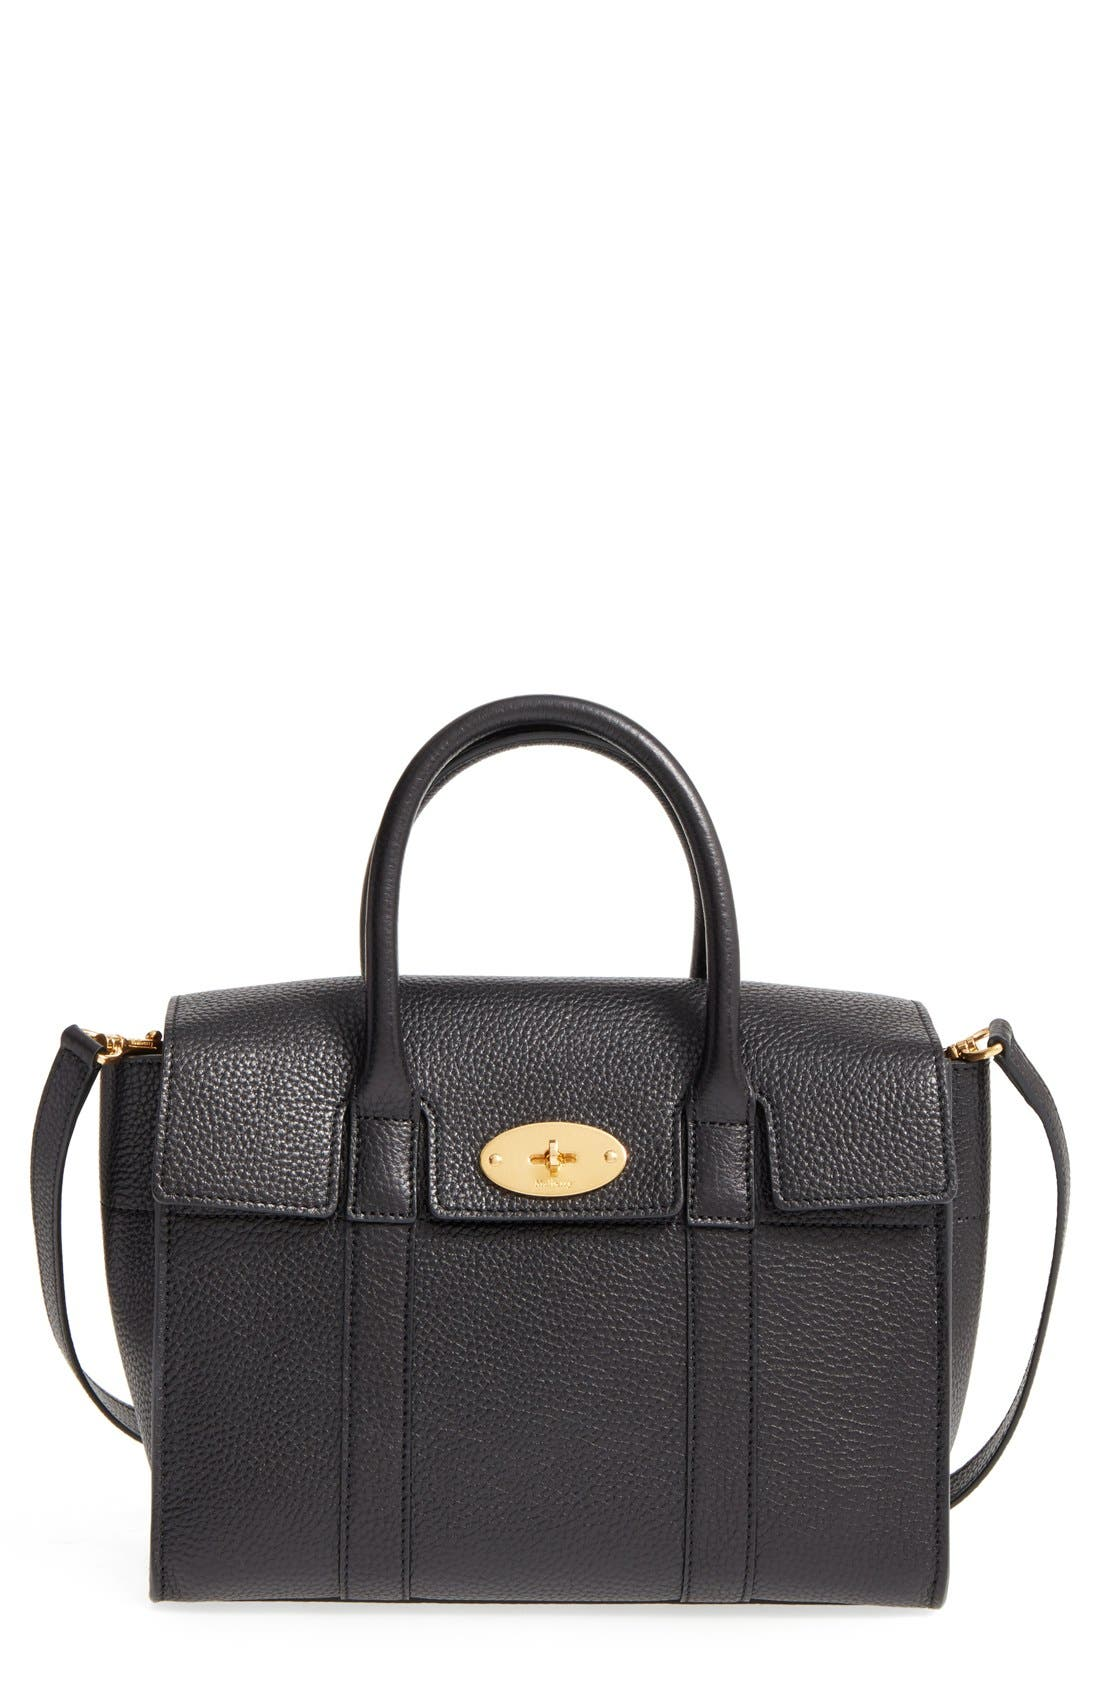 Alternate Image 1 Selected - Mulberry 'Small Bayswater' Leather Satchel